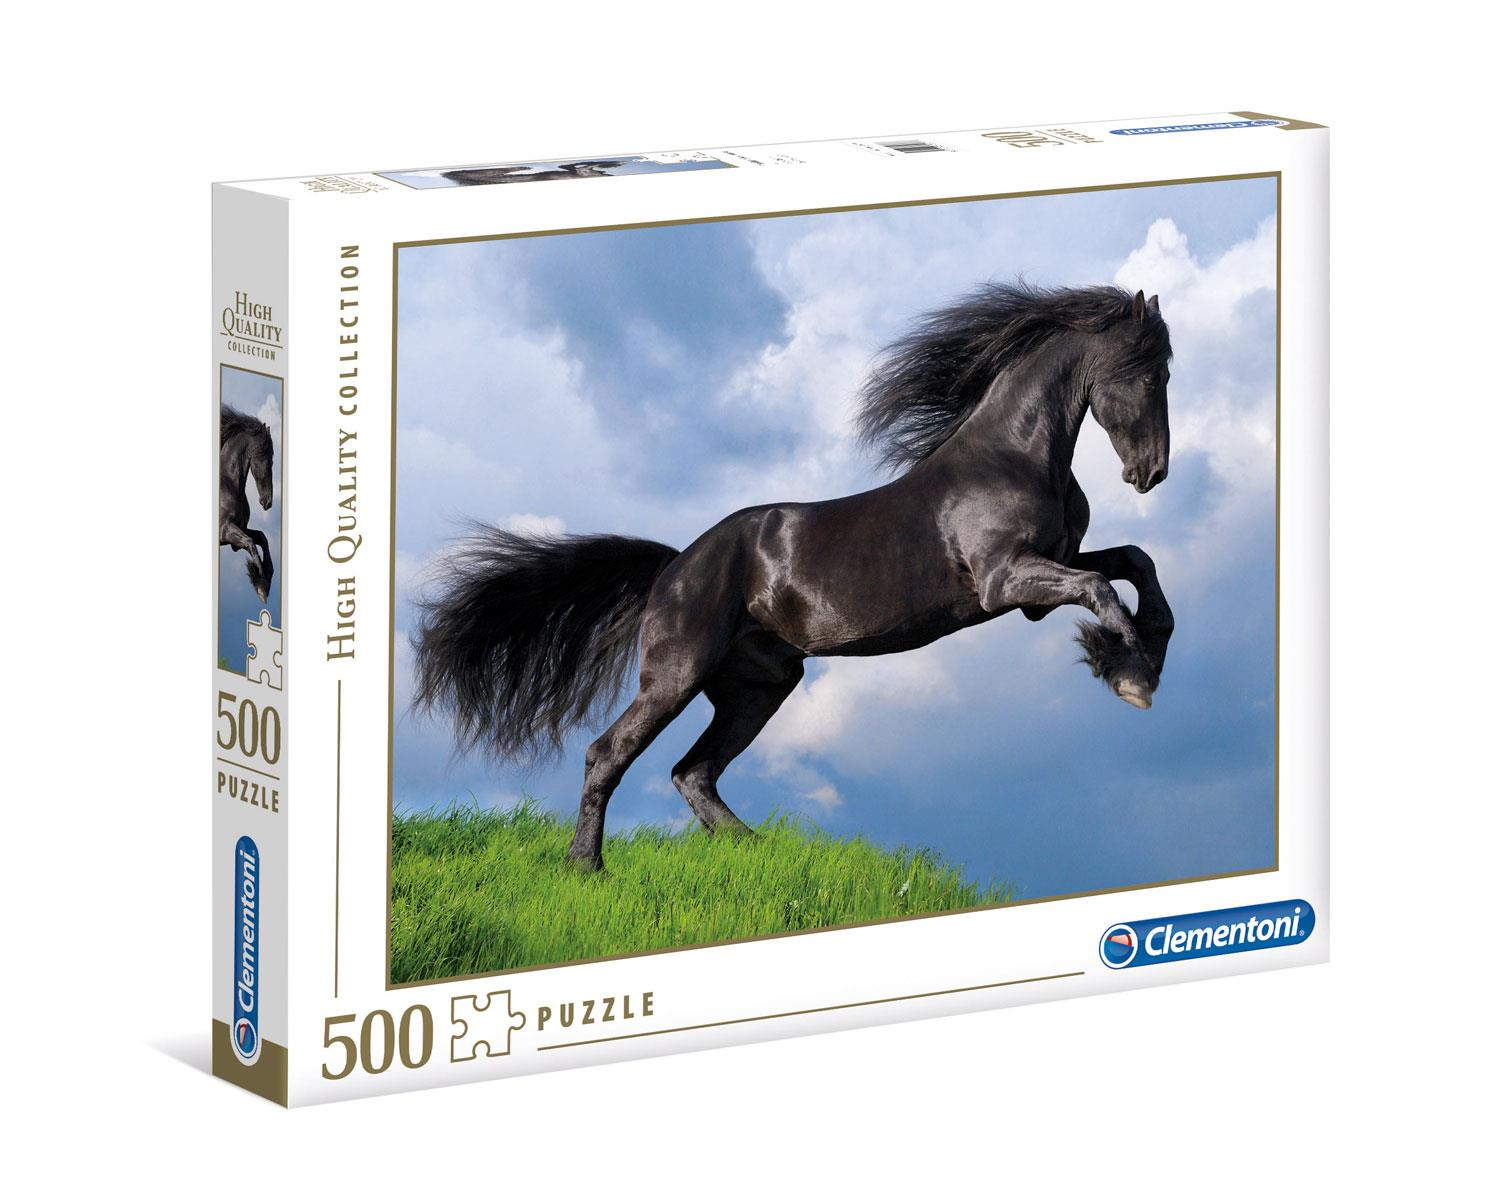 Clementoni Fresian Black Horse High Quality Jigsaw Puzzle (500 Pieces)